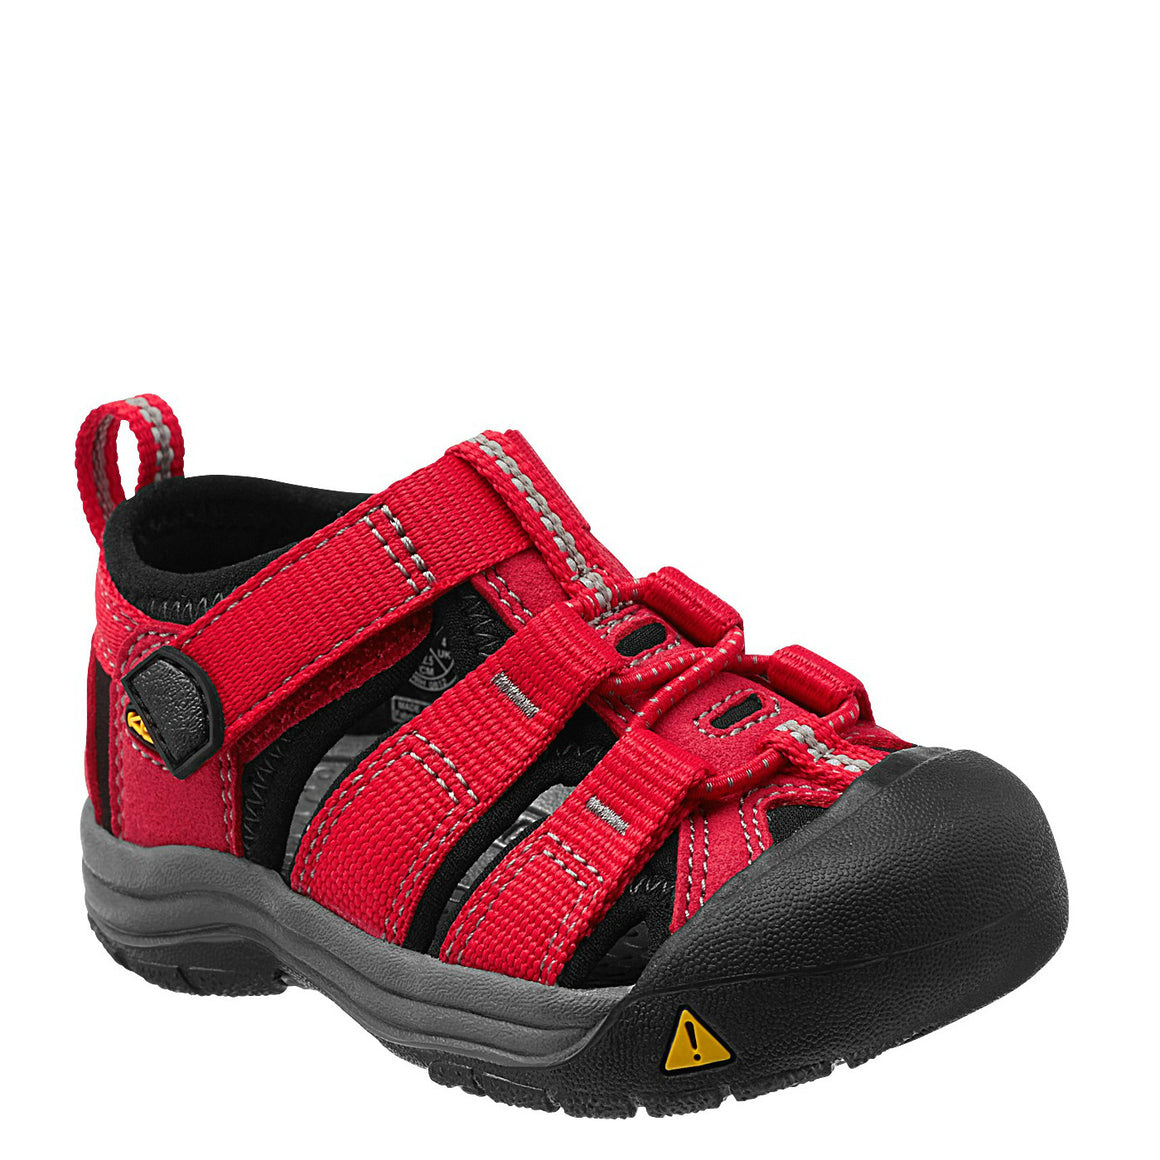 Keen Toddler's Newport H2 - Ribbon Red/Gargoyle 1012277